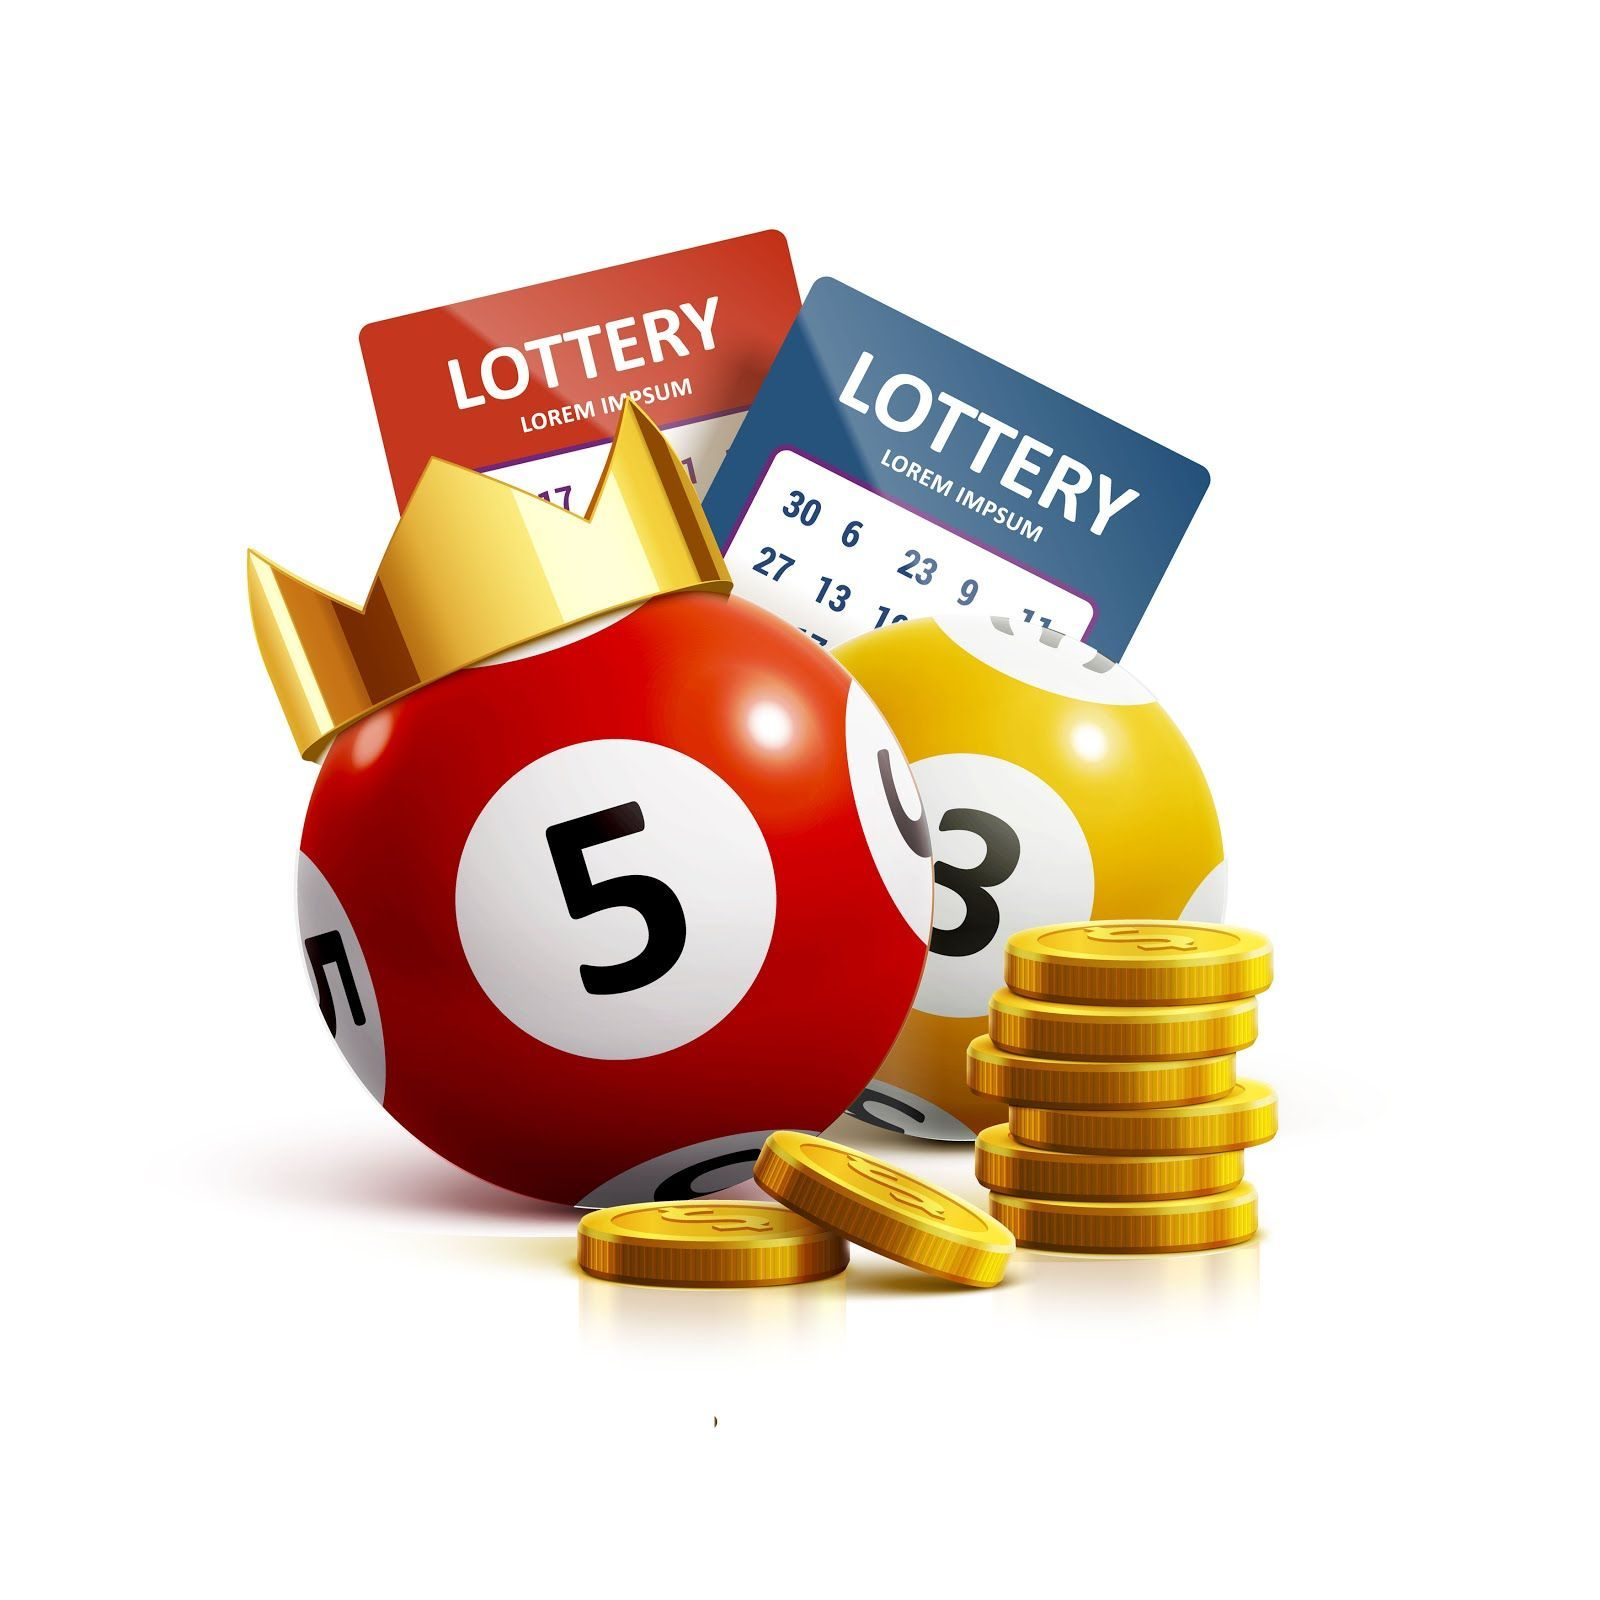 How to Improve your chances of winning scratcher ticket